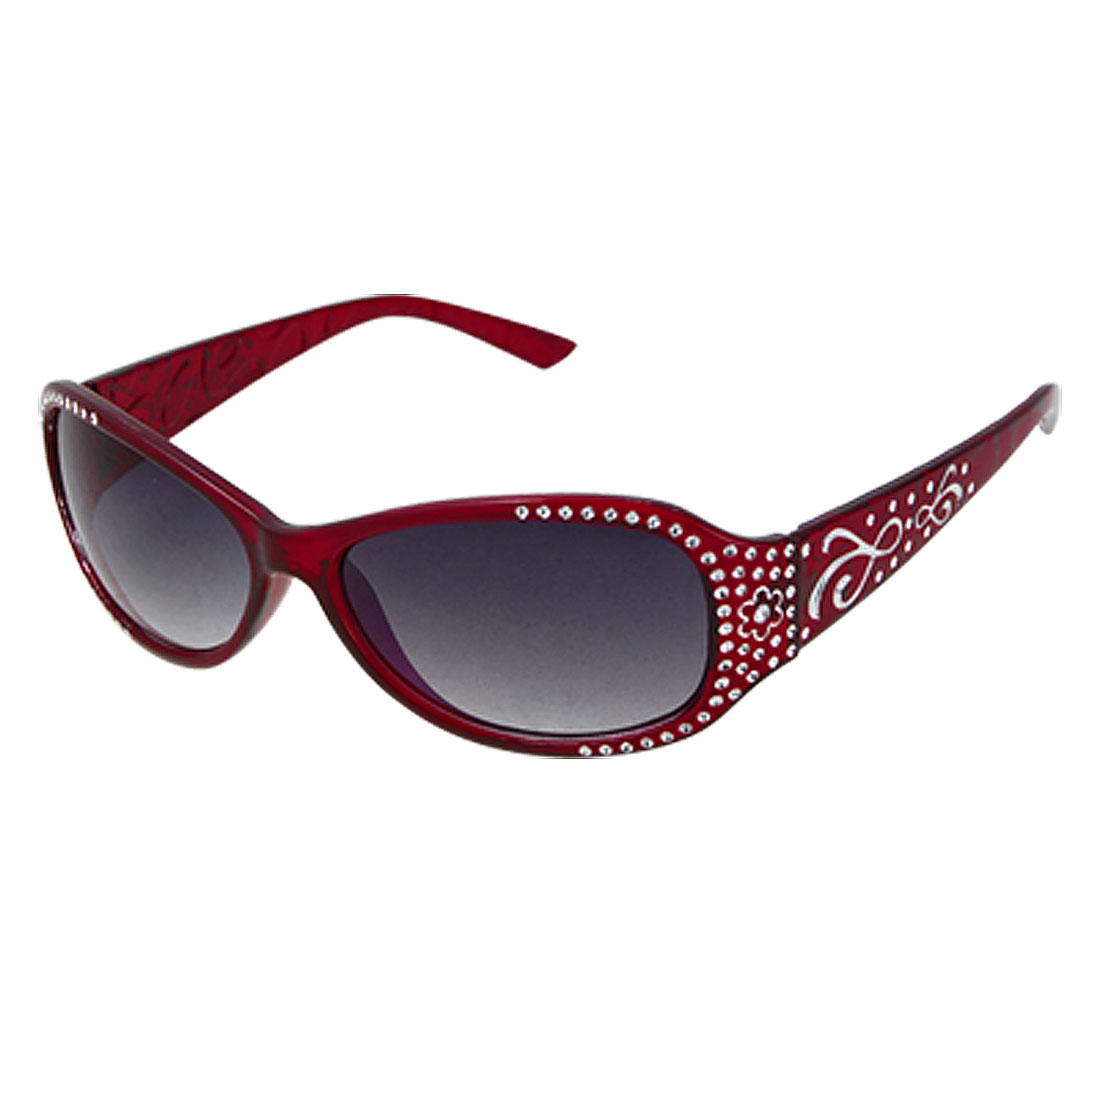 Ladies Gray Lens Sunglasses Glittery Detailing Burgundy Frame Eyewear